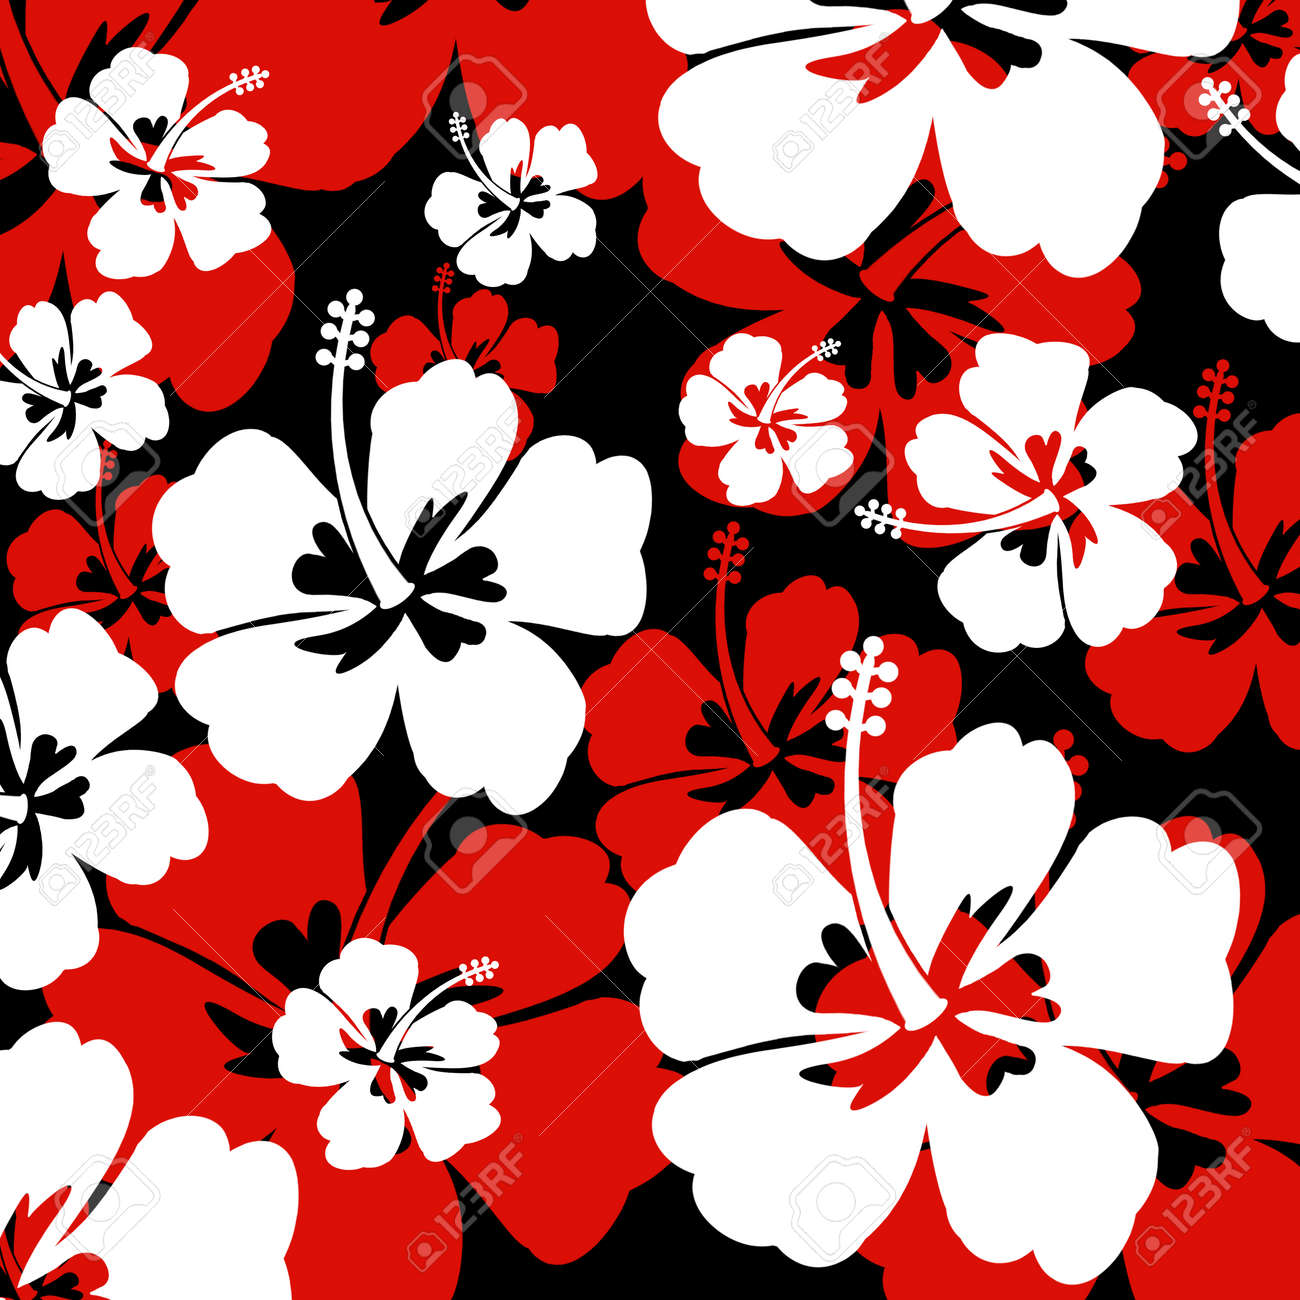 Flower images 2018 hibiscus flower template flower images hibiscus flower template the flowers are very beautiful here we provide a collections of various pictures of beautiful flowers charming cute and unique izmirmasajfo